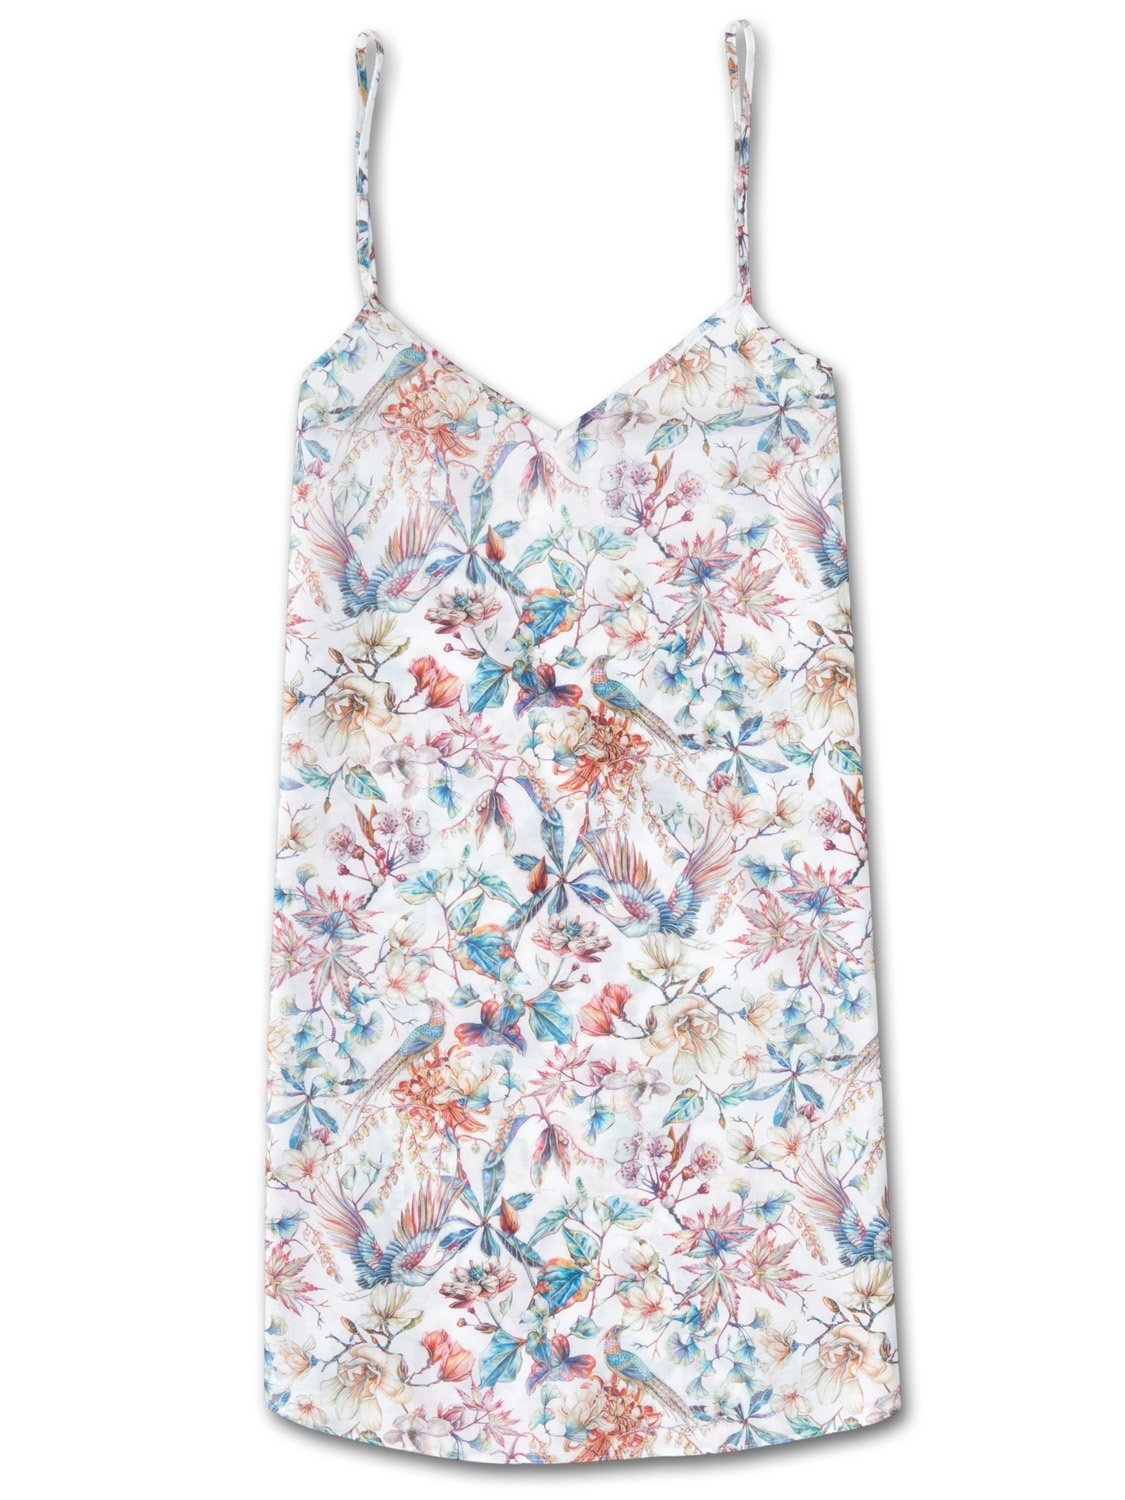 Women's Chemise Ledbury 14 Cotton Batiste Multi